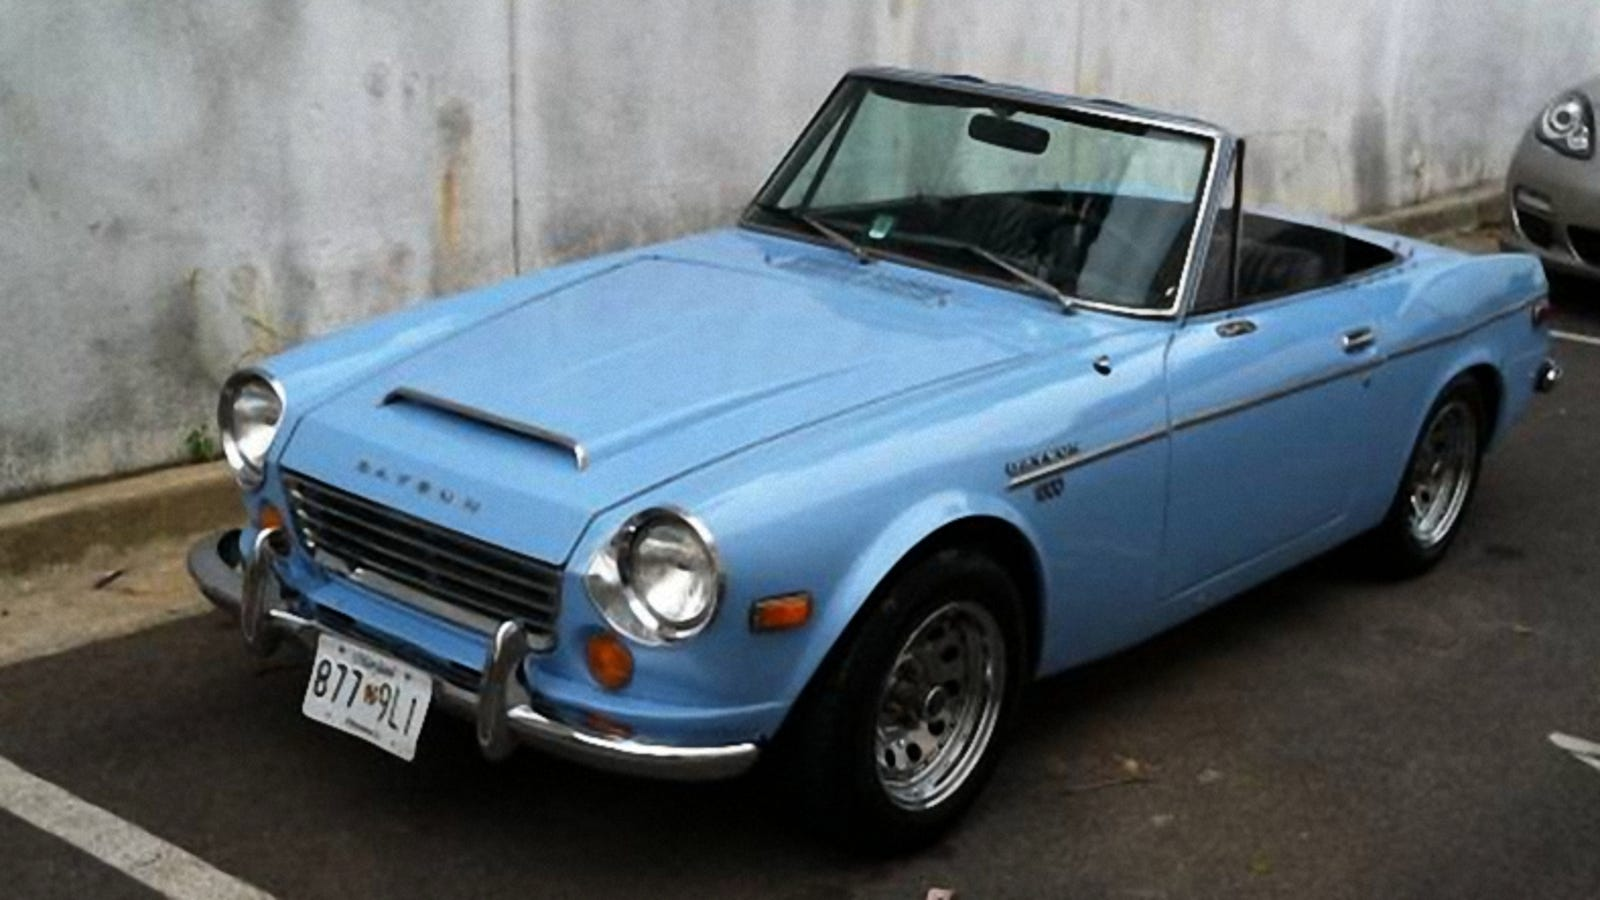 For $5,500, Would You Like To Find This 1970 Datsun 1600 Under Your